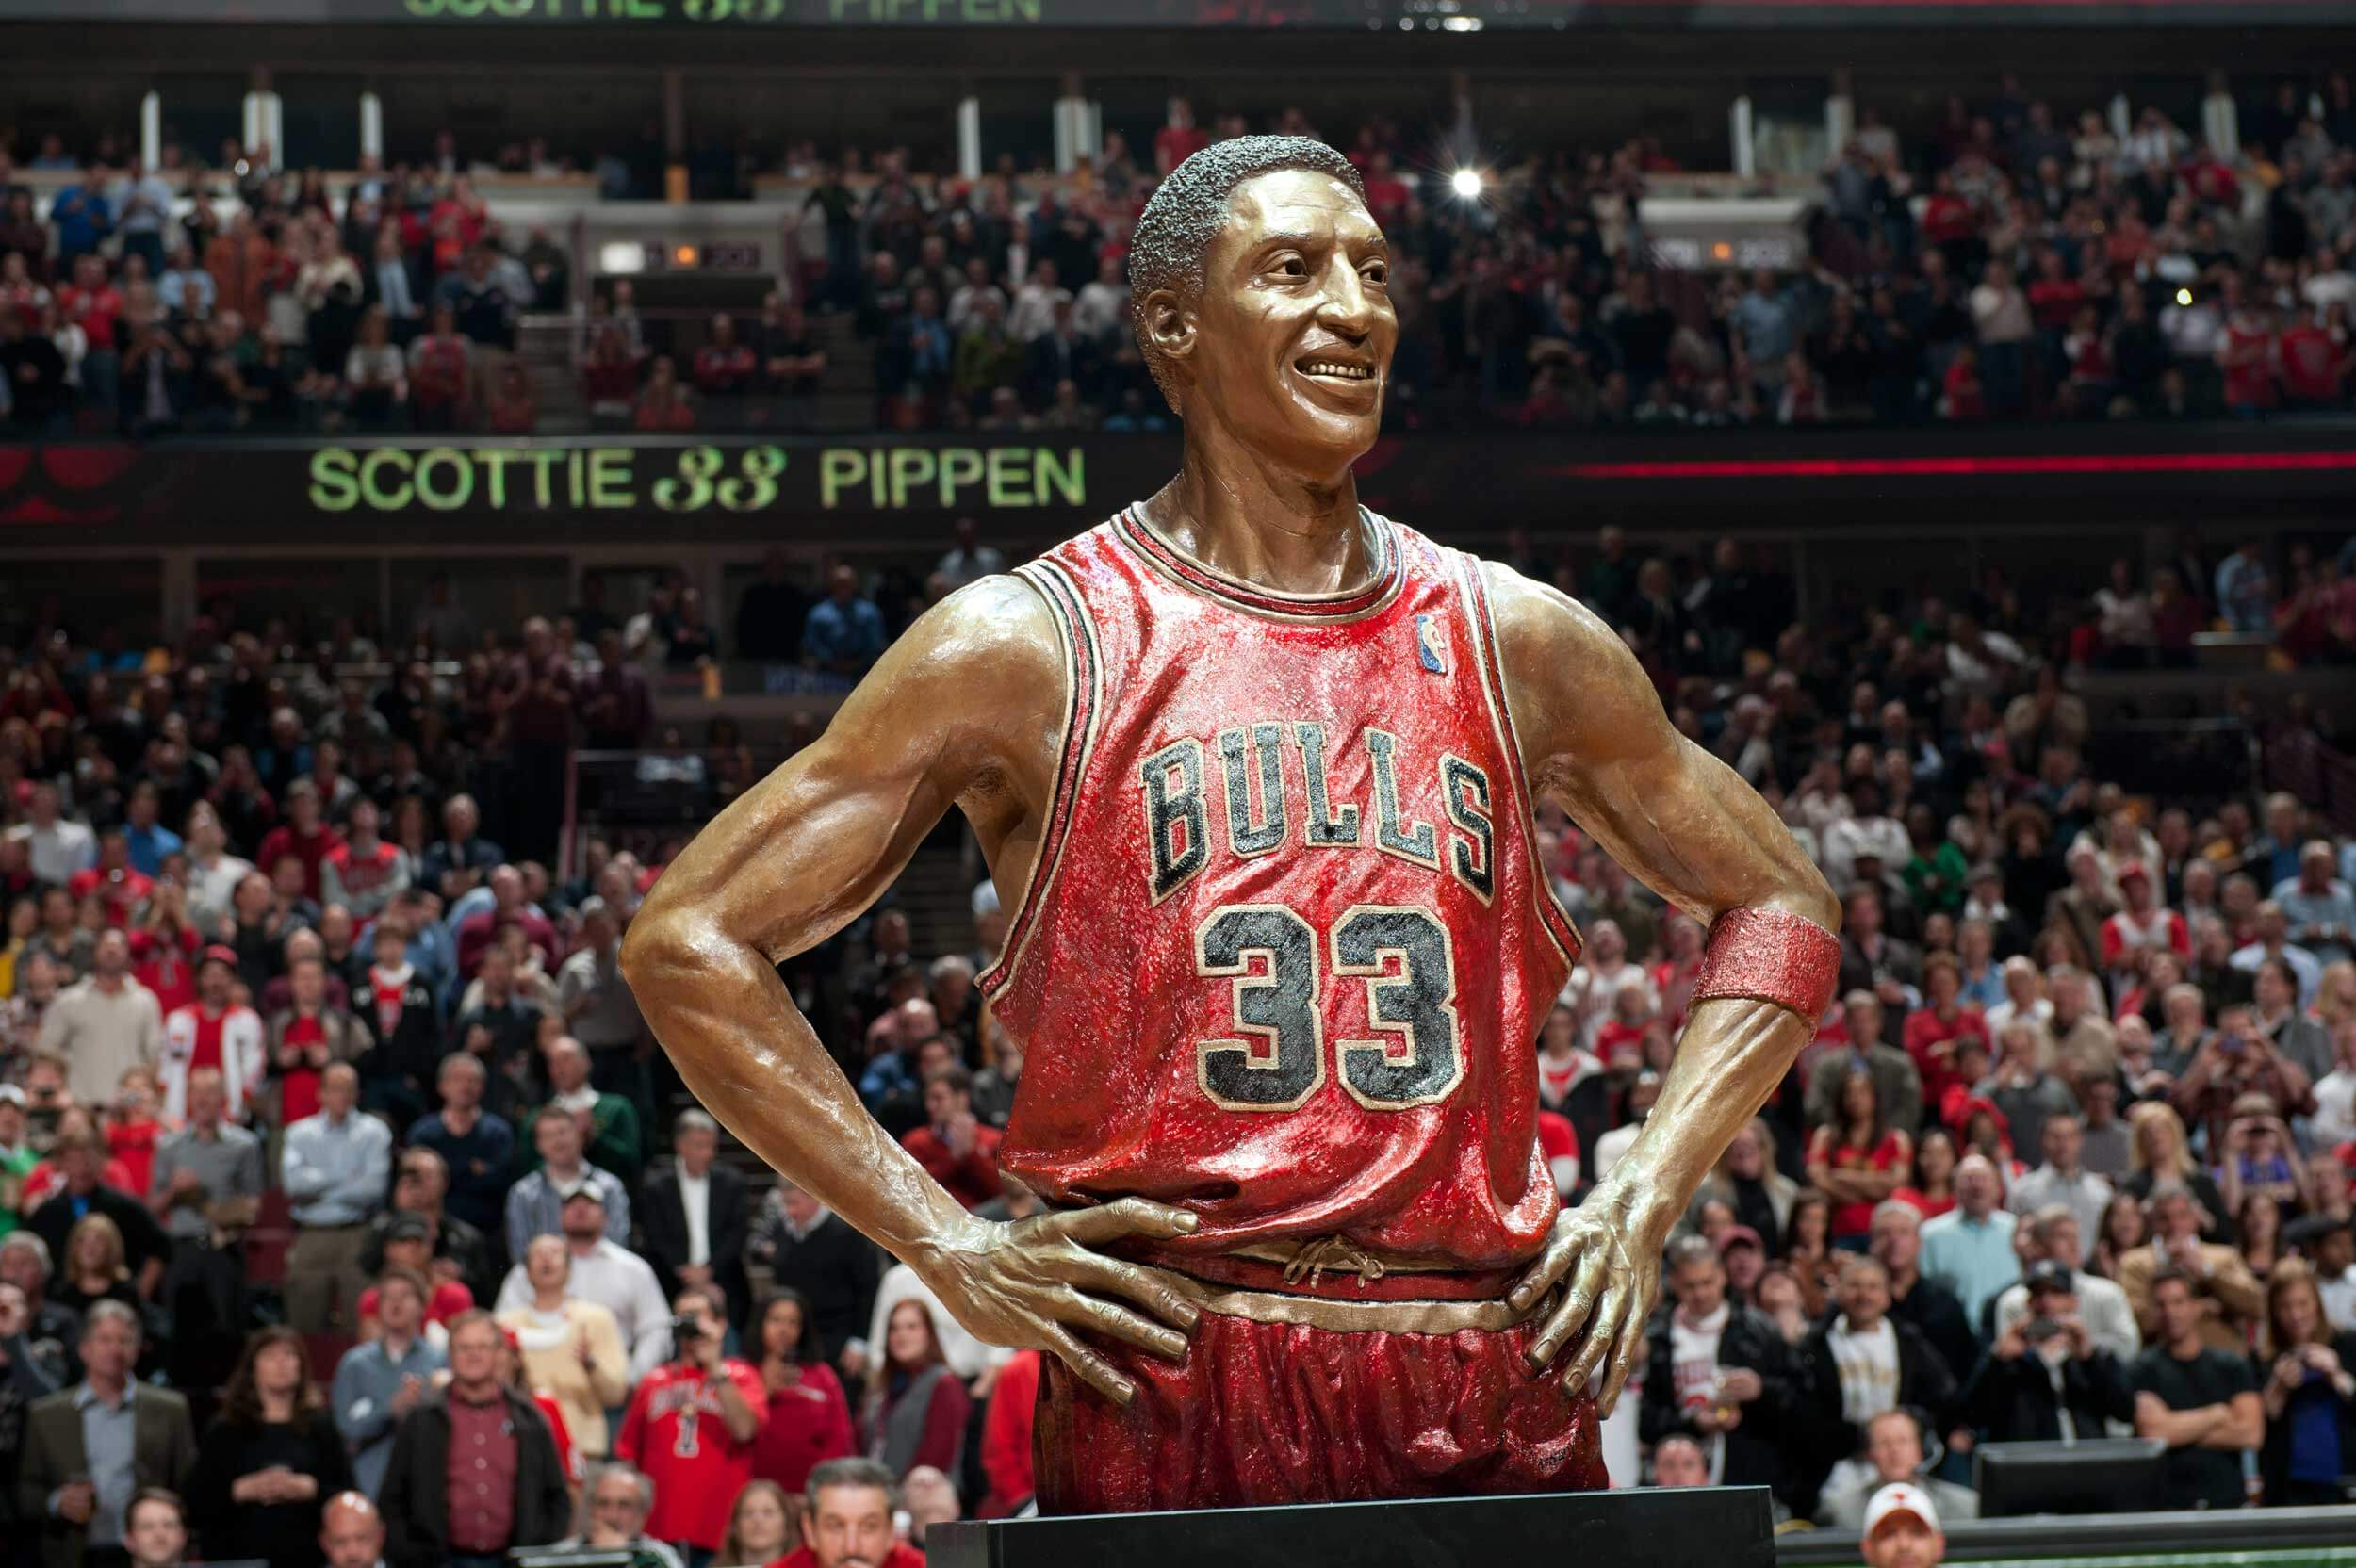 Scottie Pippen Sports mission Bronze Statue